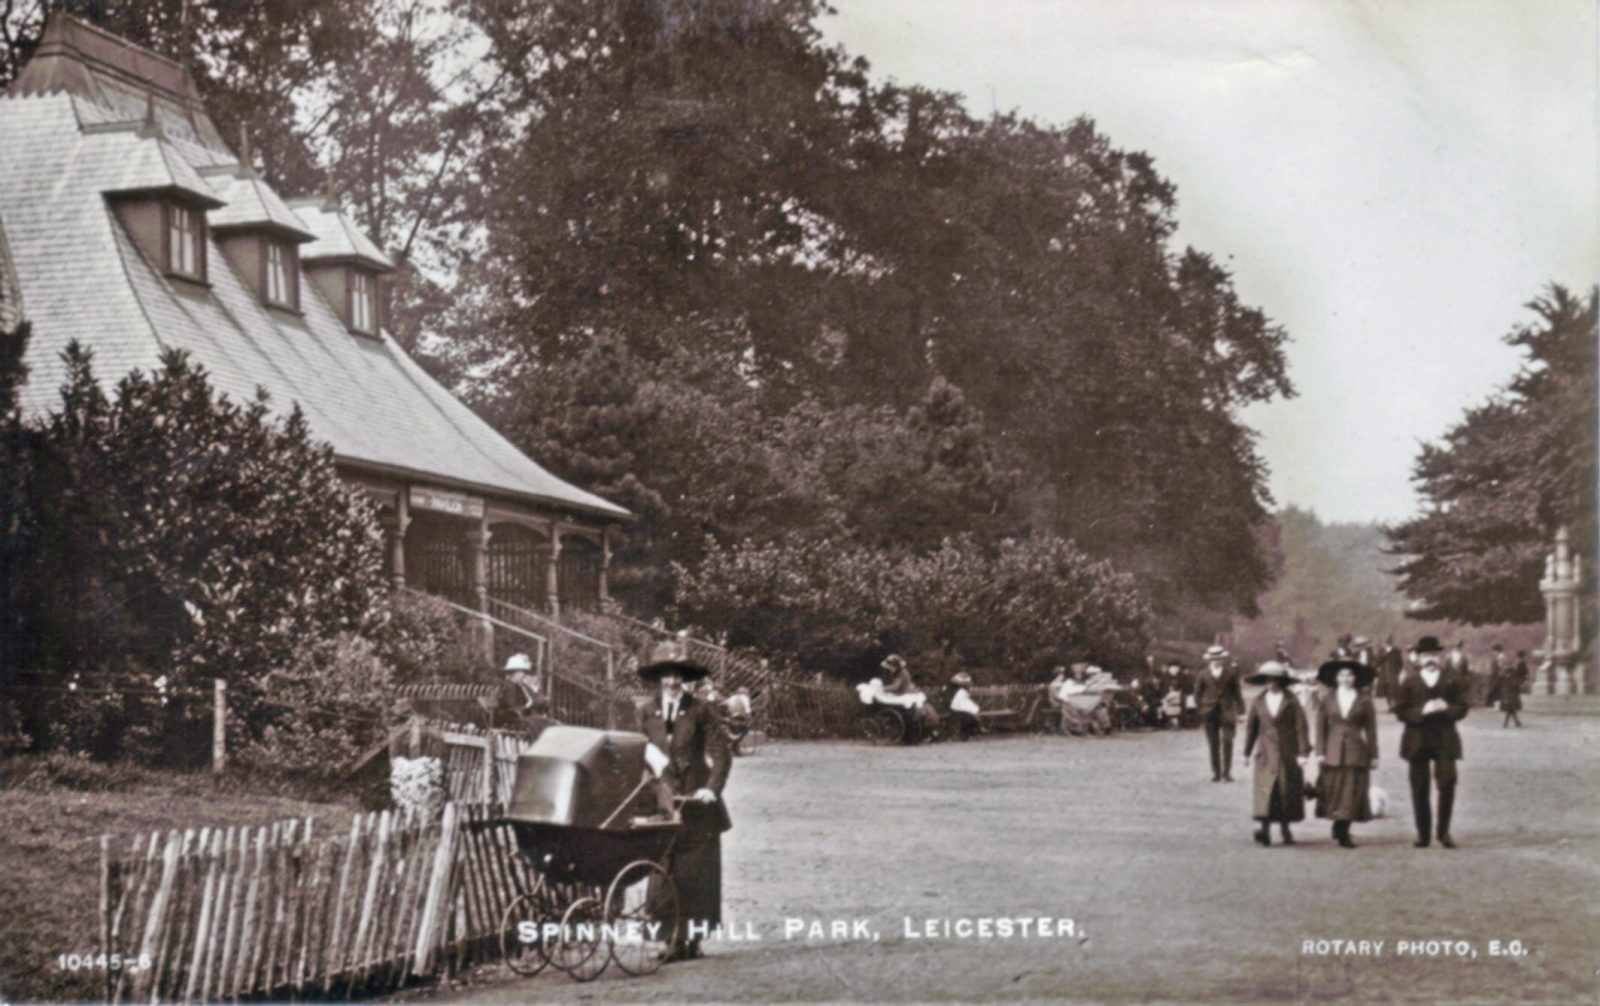 Spinney Hill Park, Leicester. 1921-1940: The Pavilion and broad avenue with many people promenading. (File:1245)